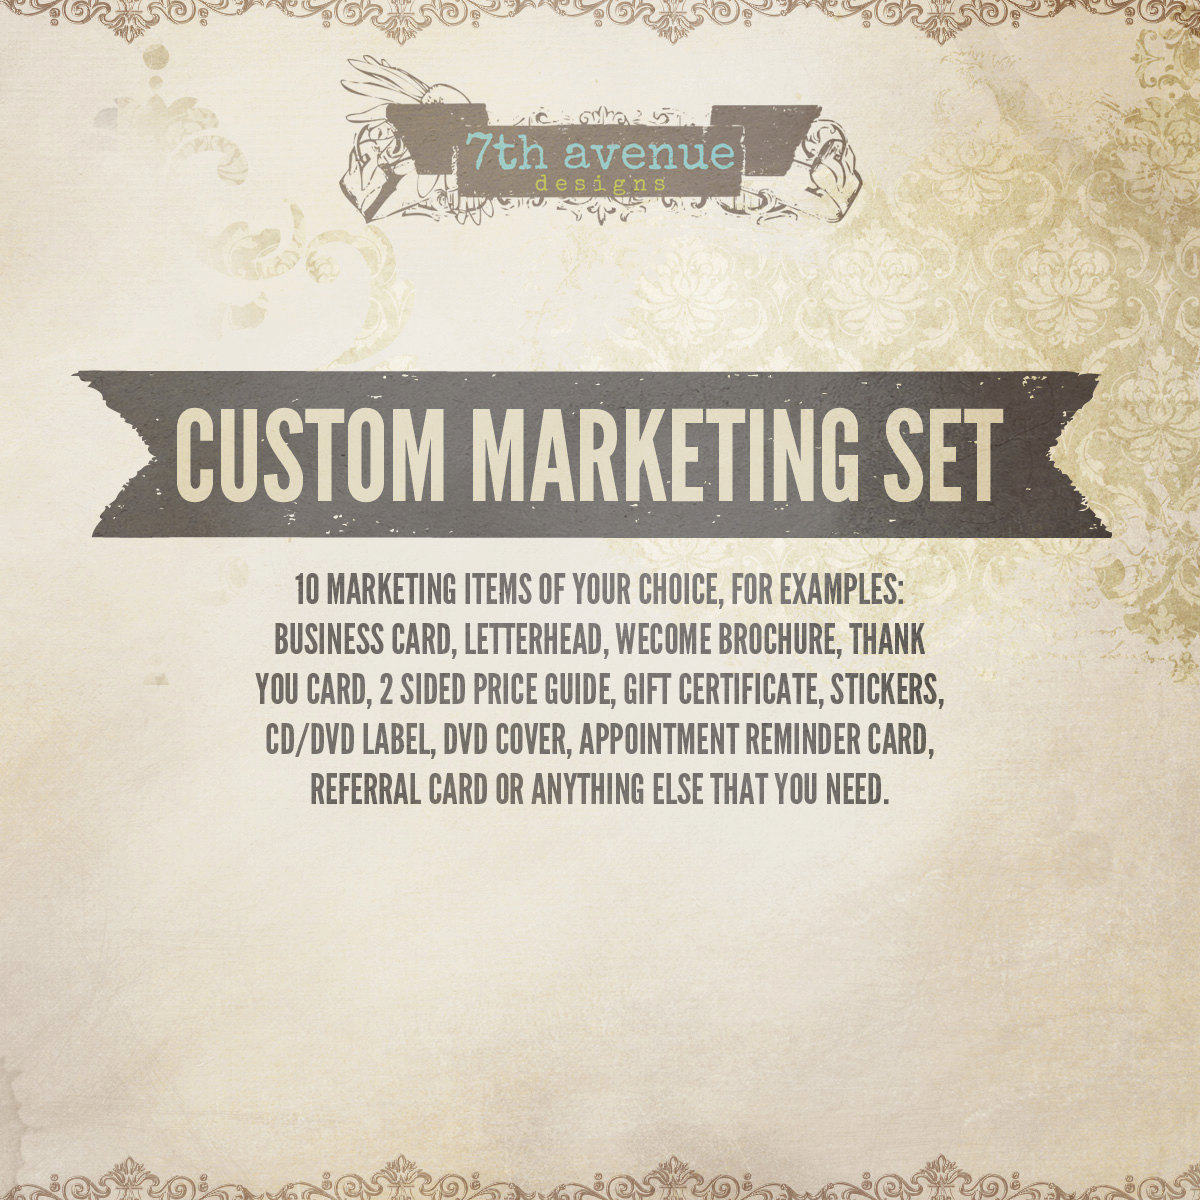 Professional Custom Marketing Set Thmarketingsets - Business thank you cards templates